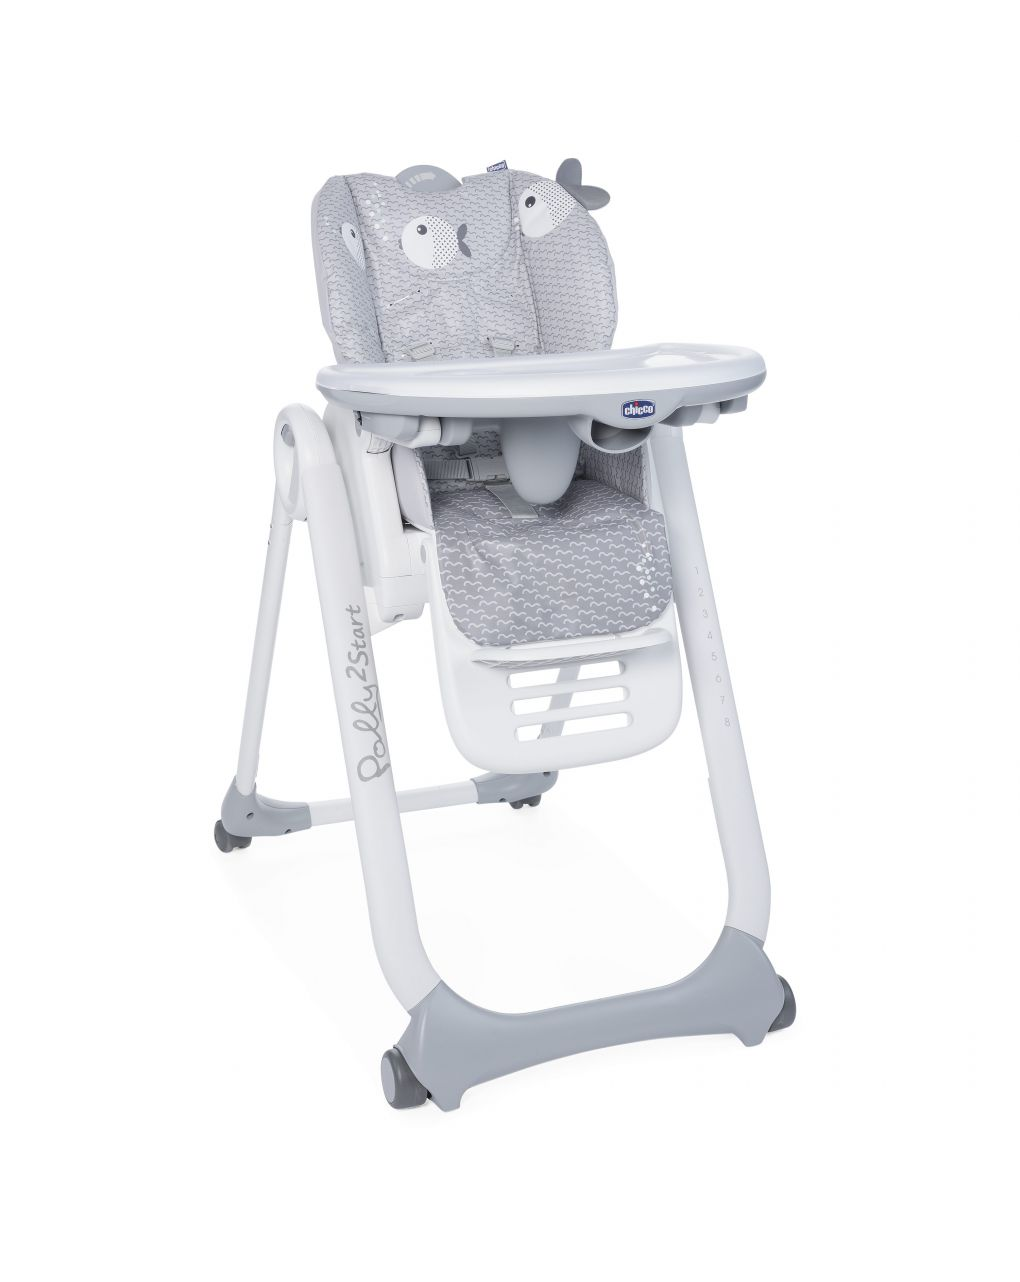 Seggiolone polly 2 start dots grey -4r - Chicco